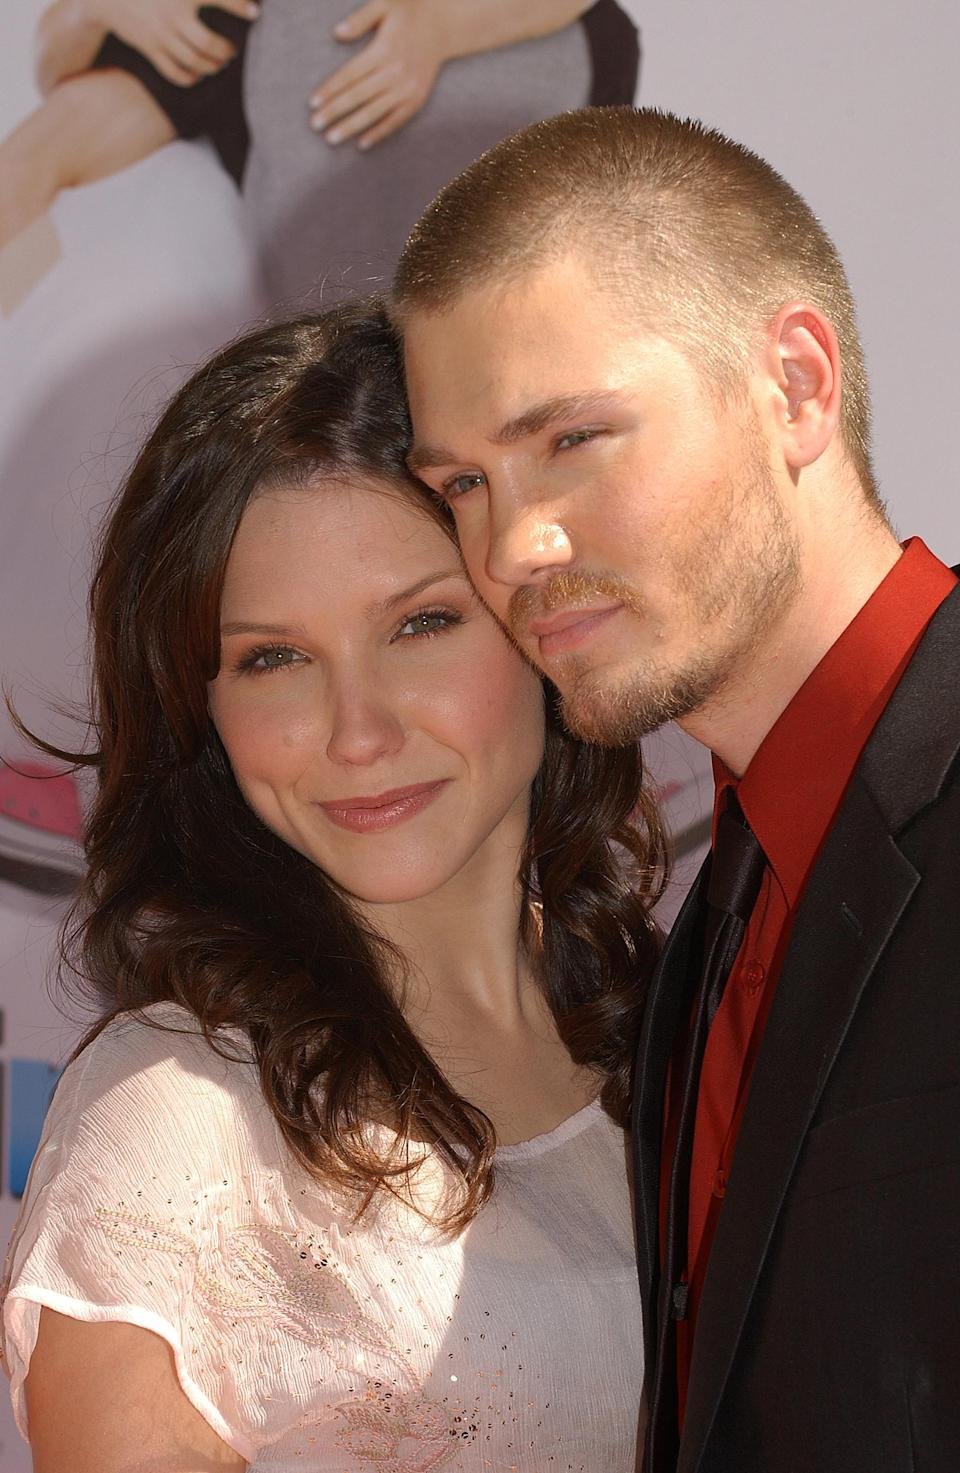 Sophia Bush and Chad Michael Murray hugging on the red carpet